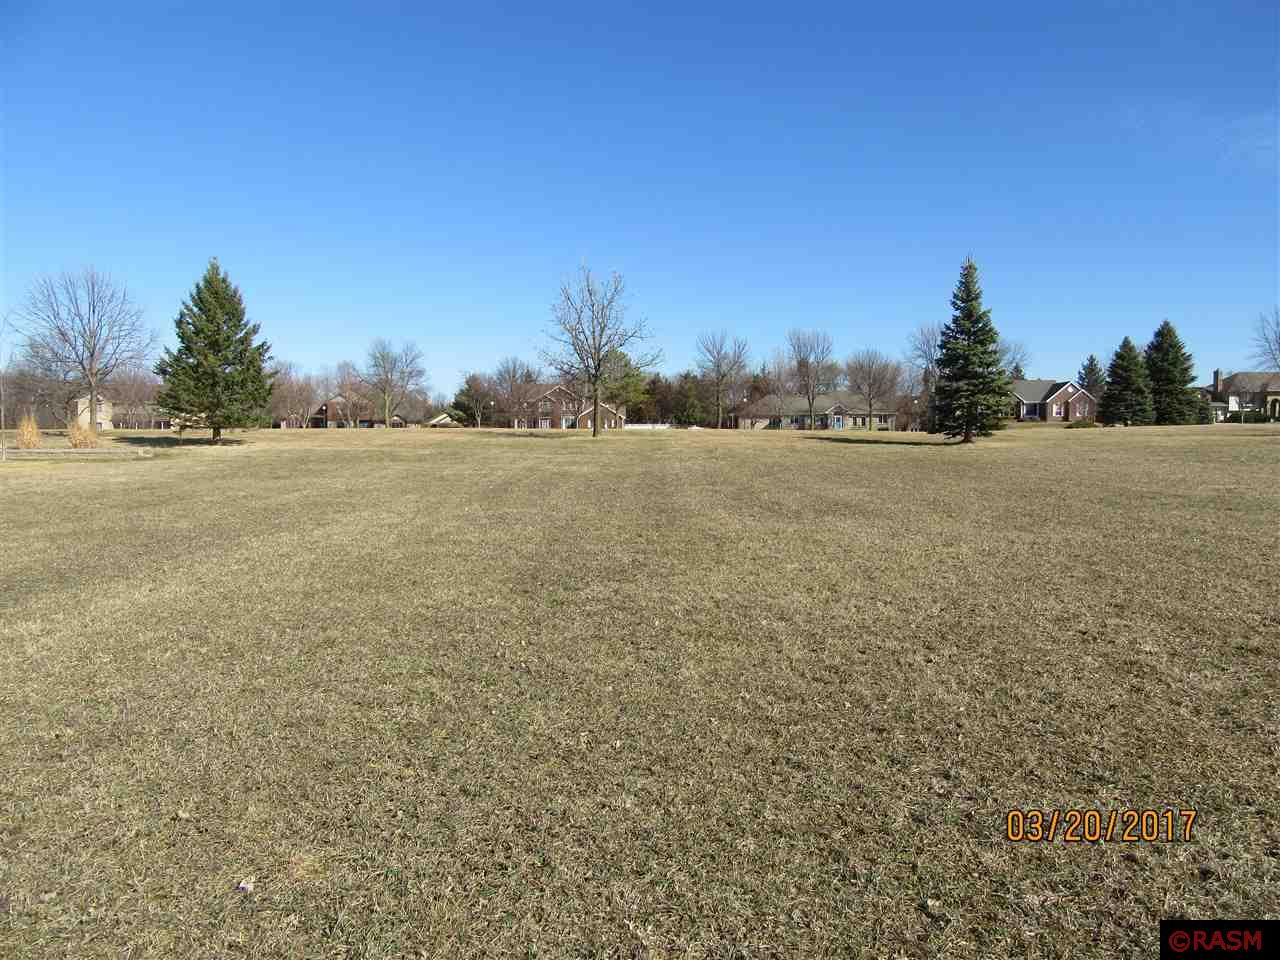 Convenient location for you to build your home.  Nice park behind this lot for a large open feel.  Drive by and check out this great space!